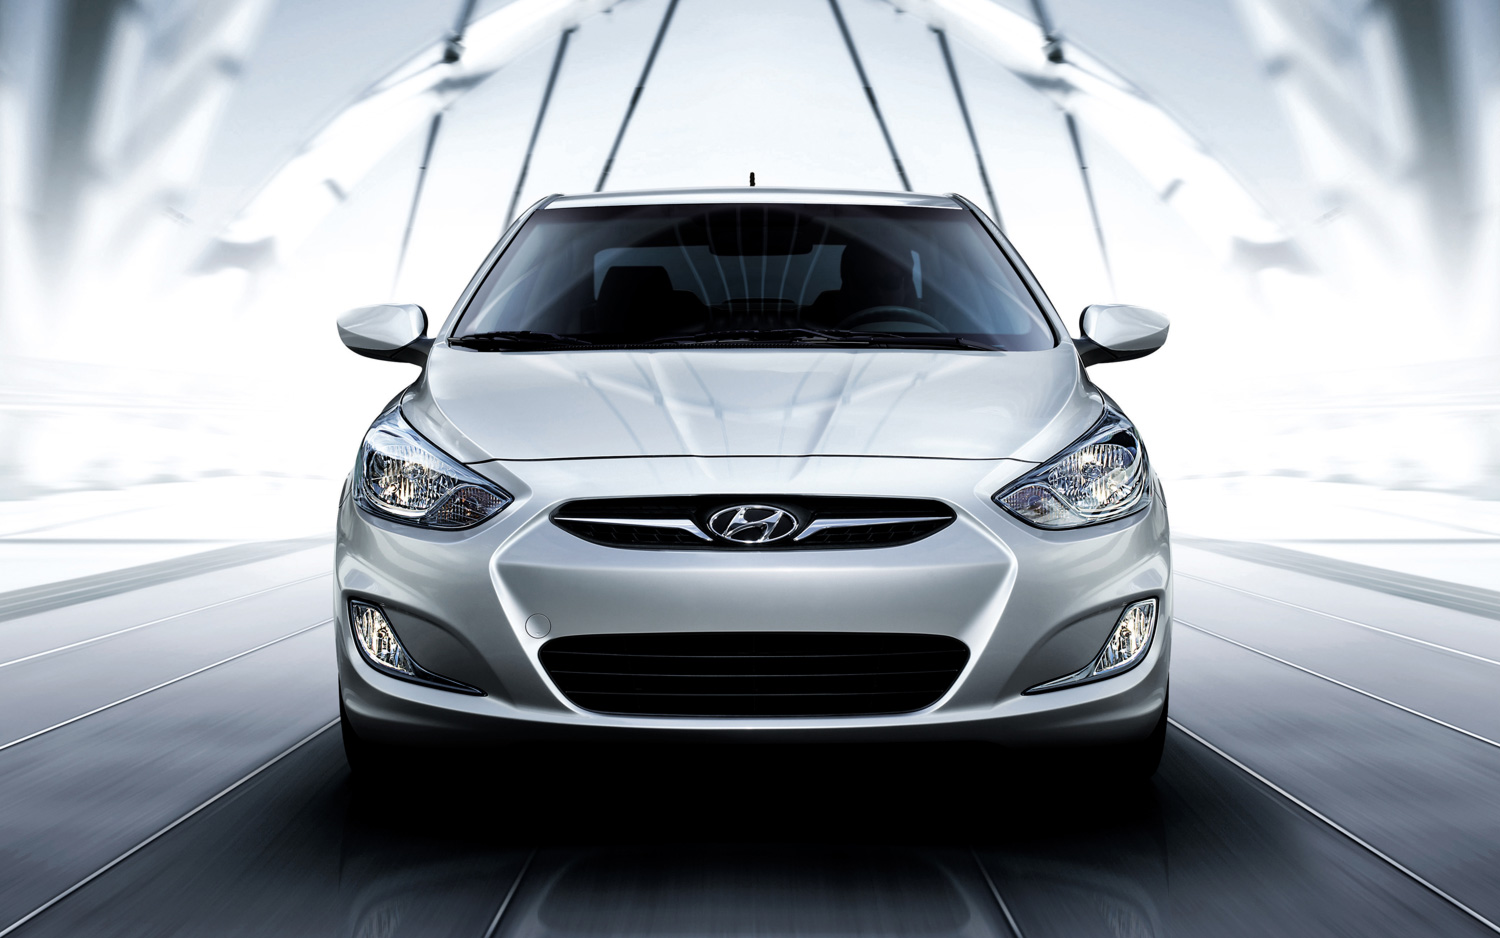 2018 Hyundai Accent photo - 3